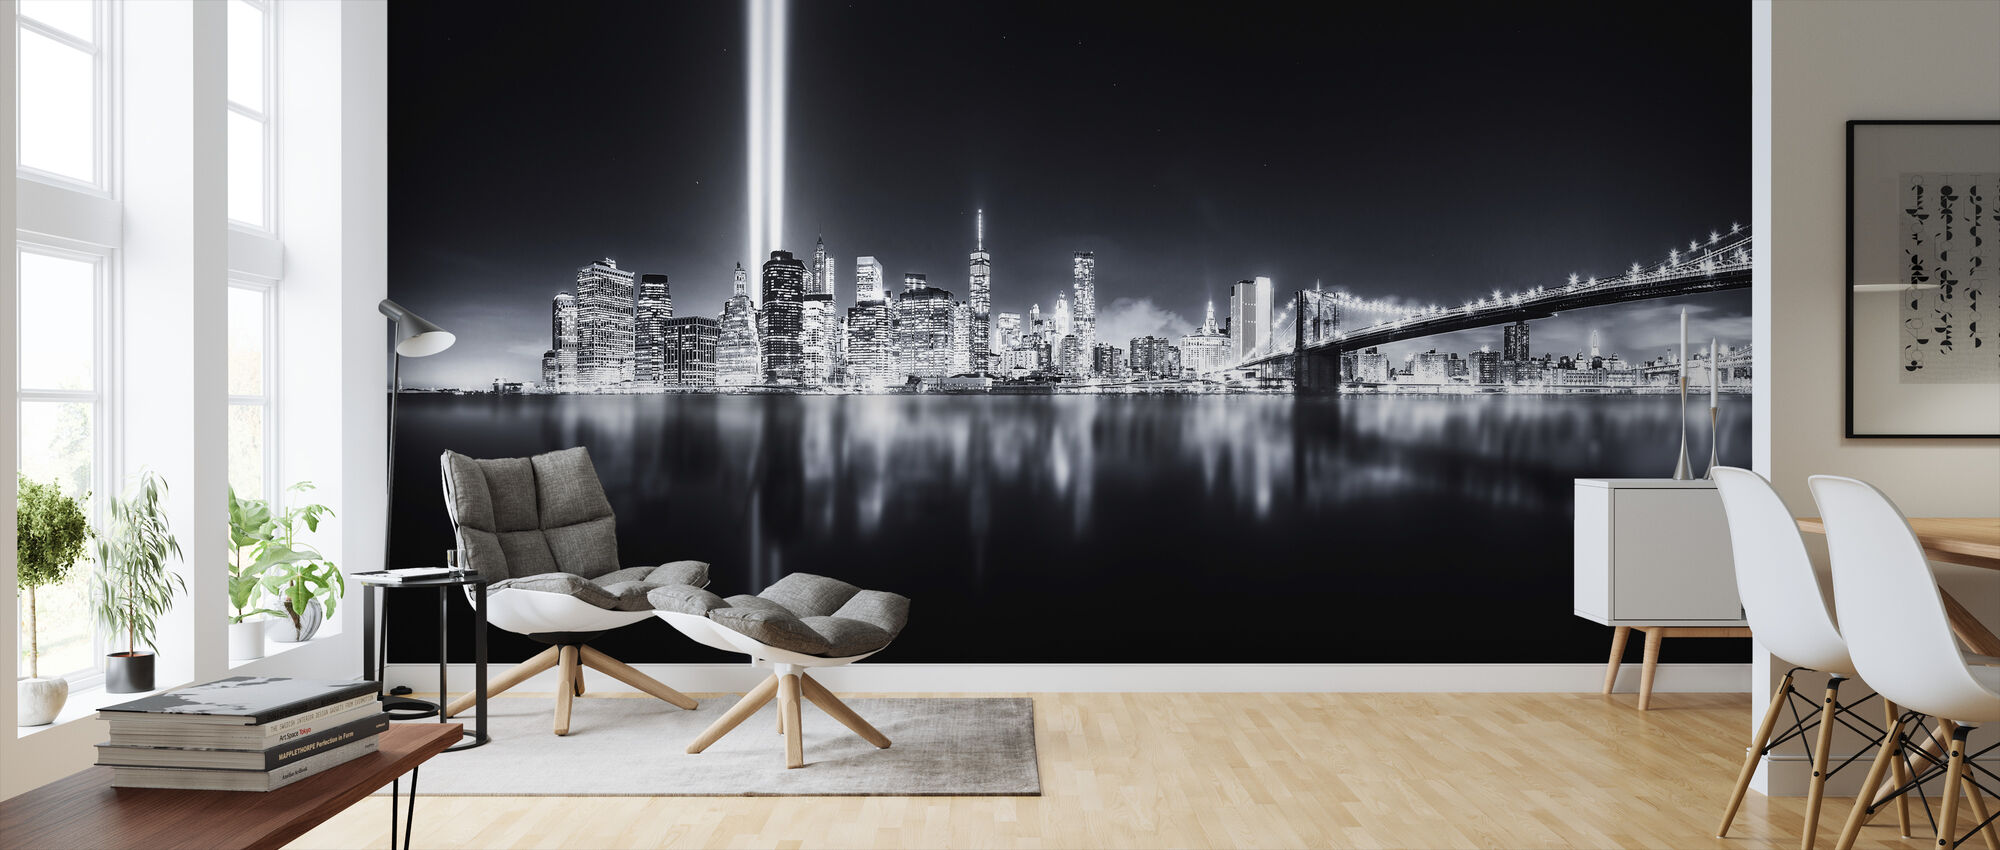 Unforgettable 9-11b - Wallpaper - Living Room